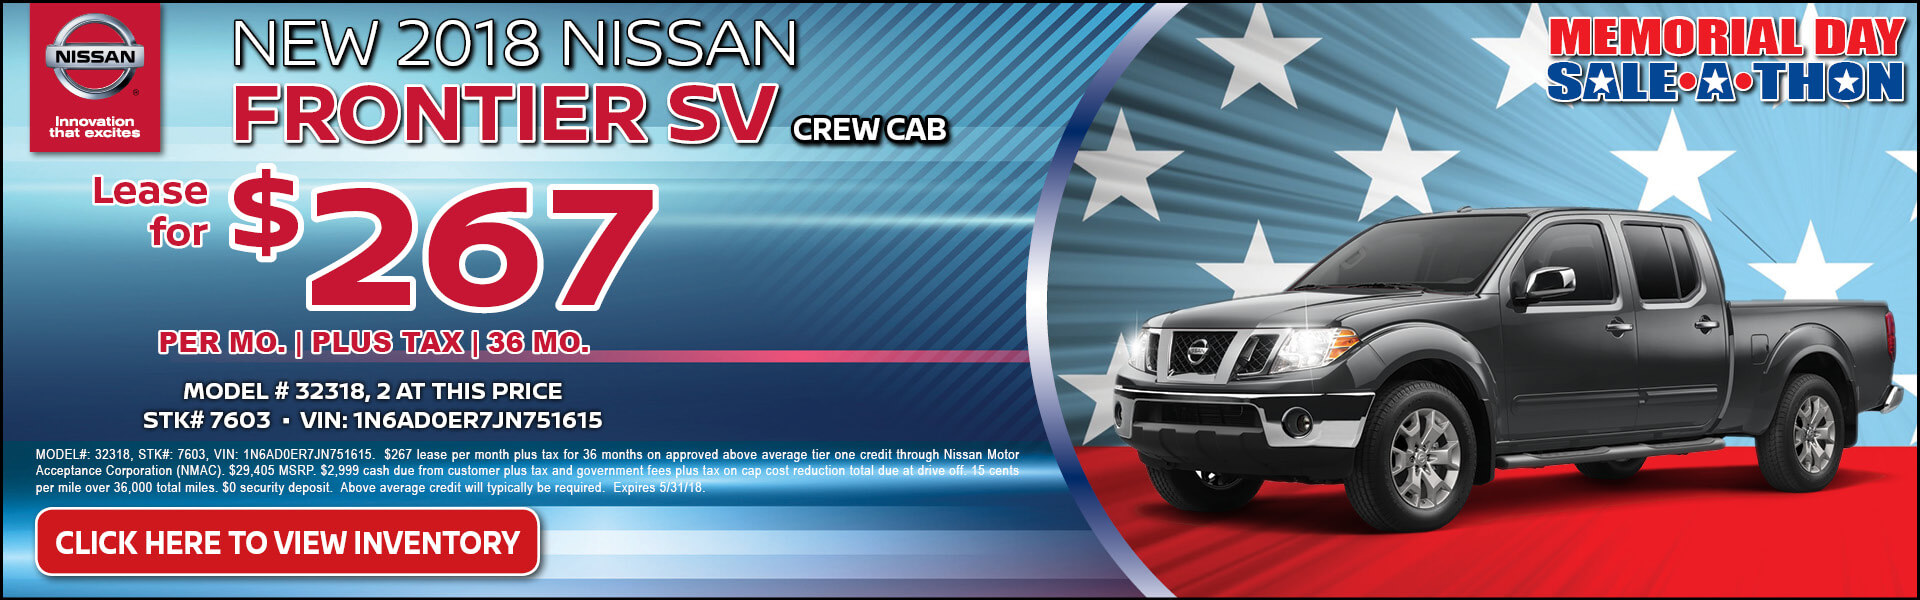 Nissan Frontier $267 Lease